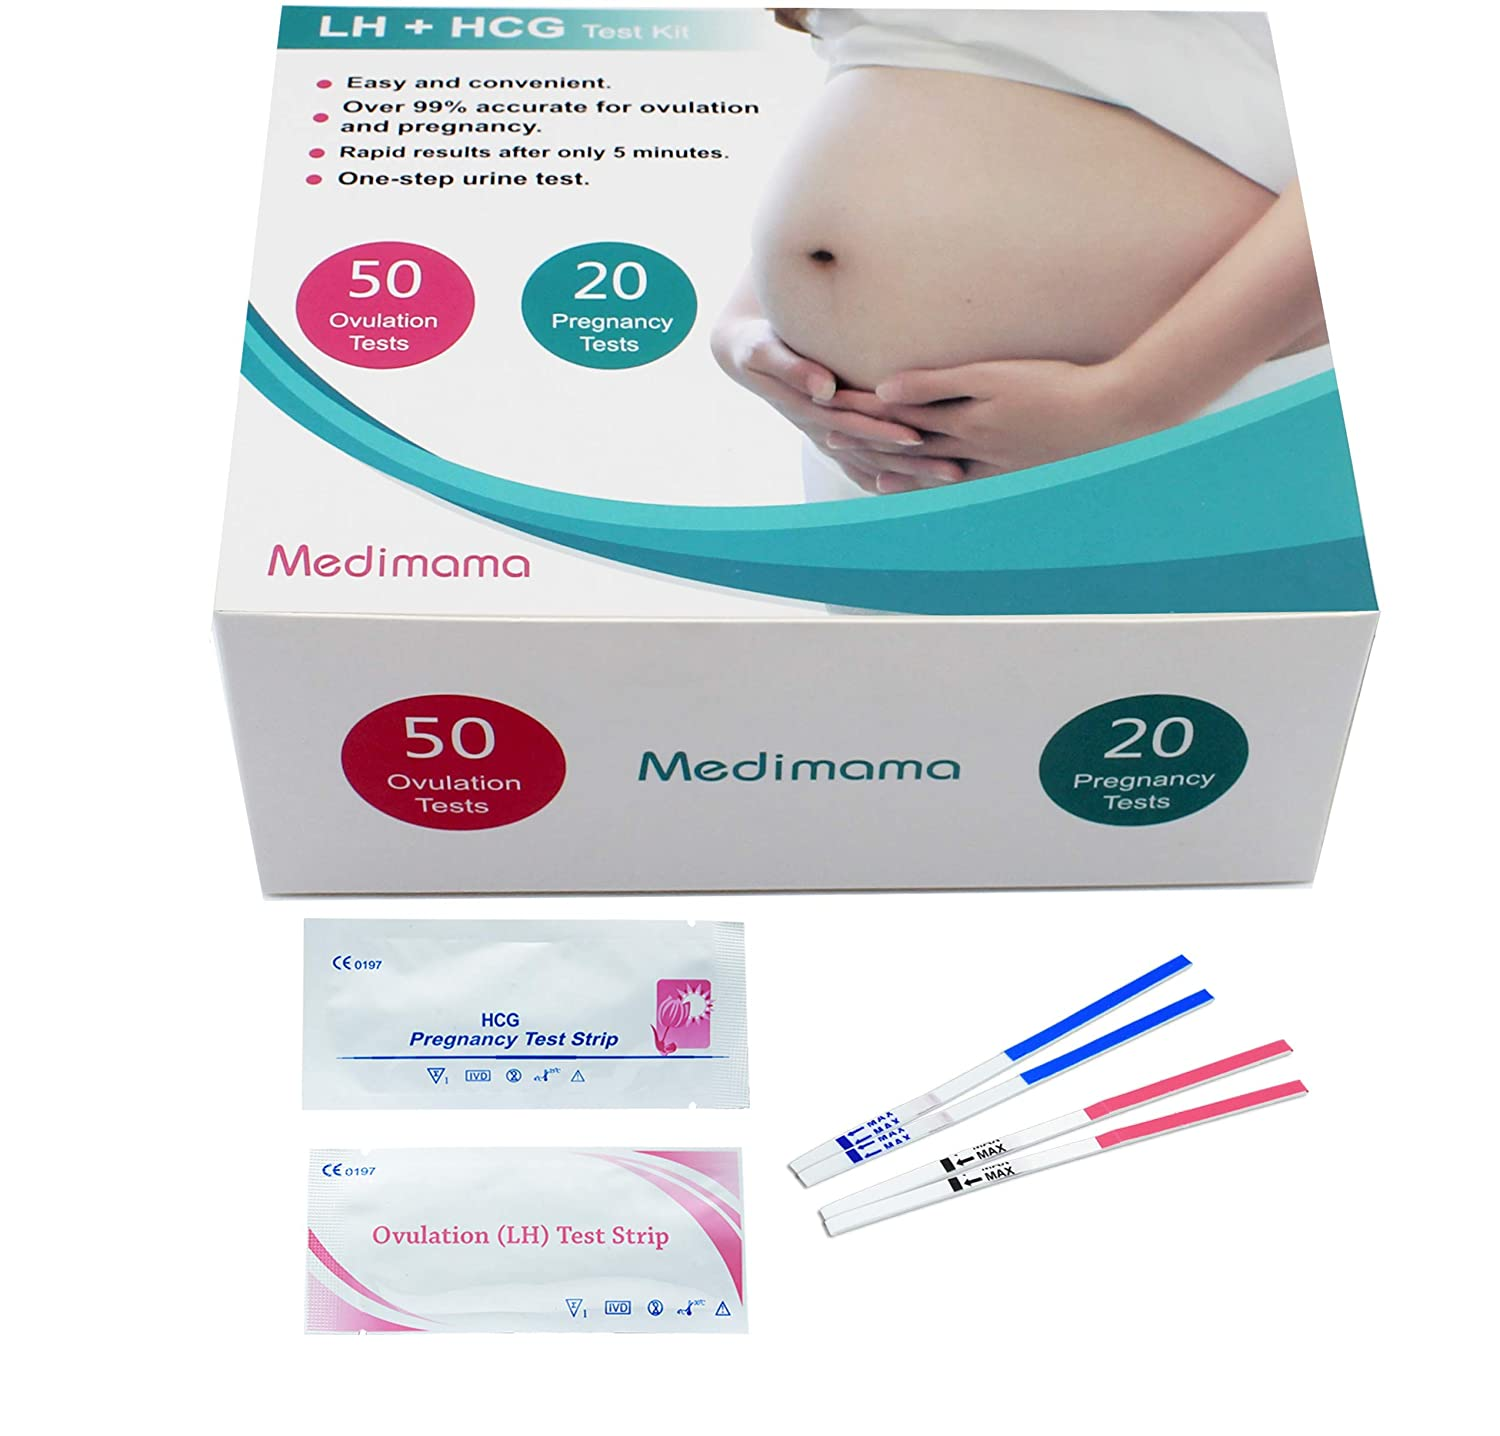 25 Ovulation Test Strips and 5 Pregnancy Test Strips Combo Kit(25 LH + 5 HCG) by Medimama